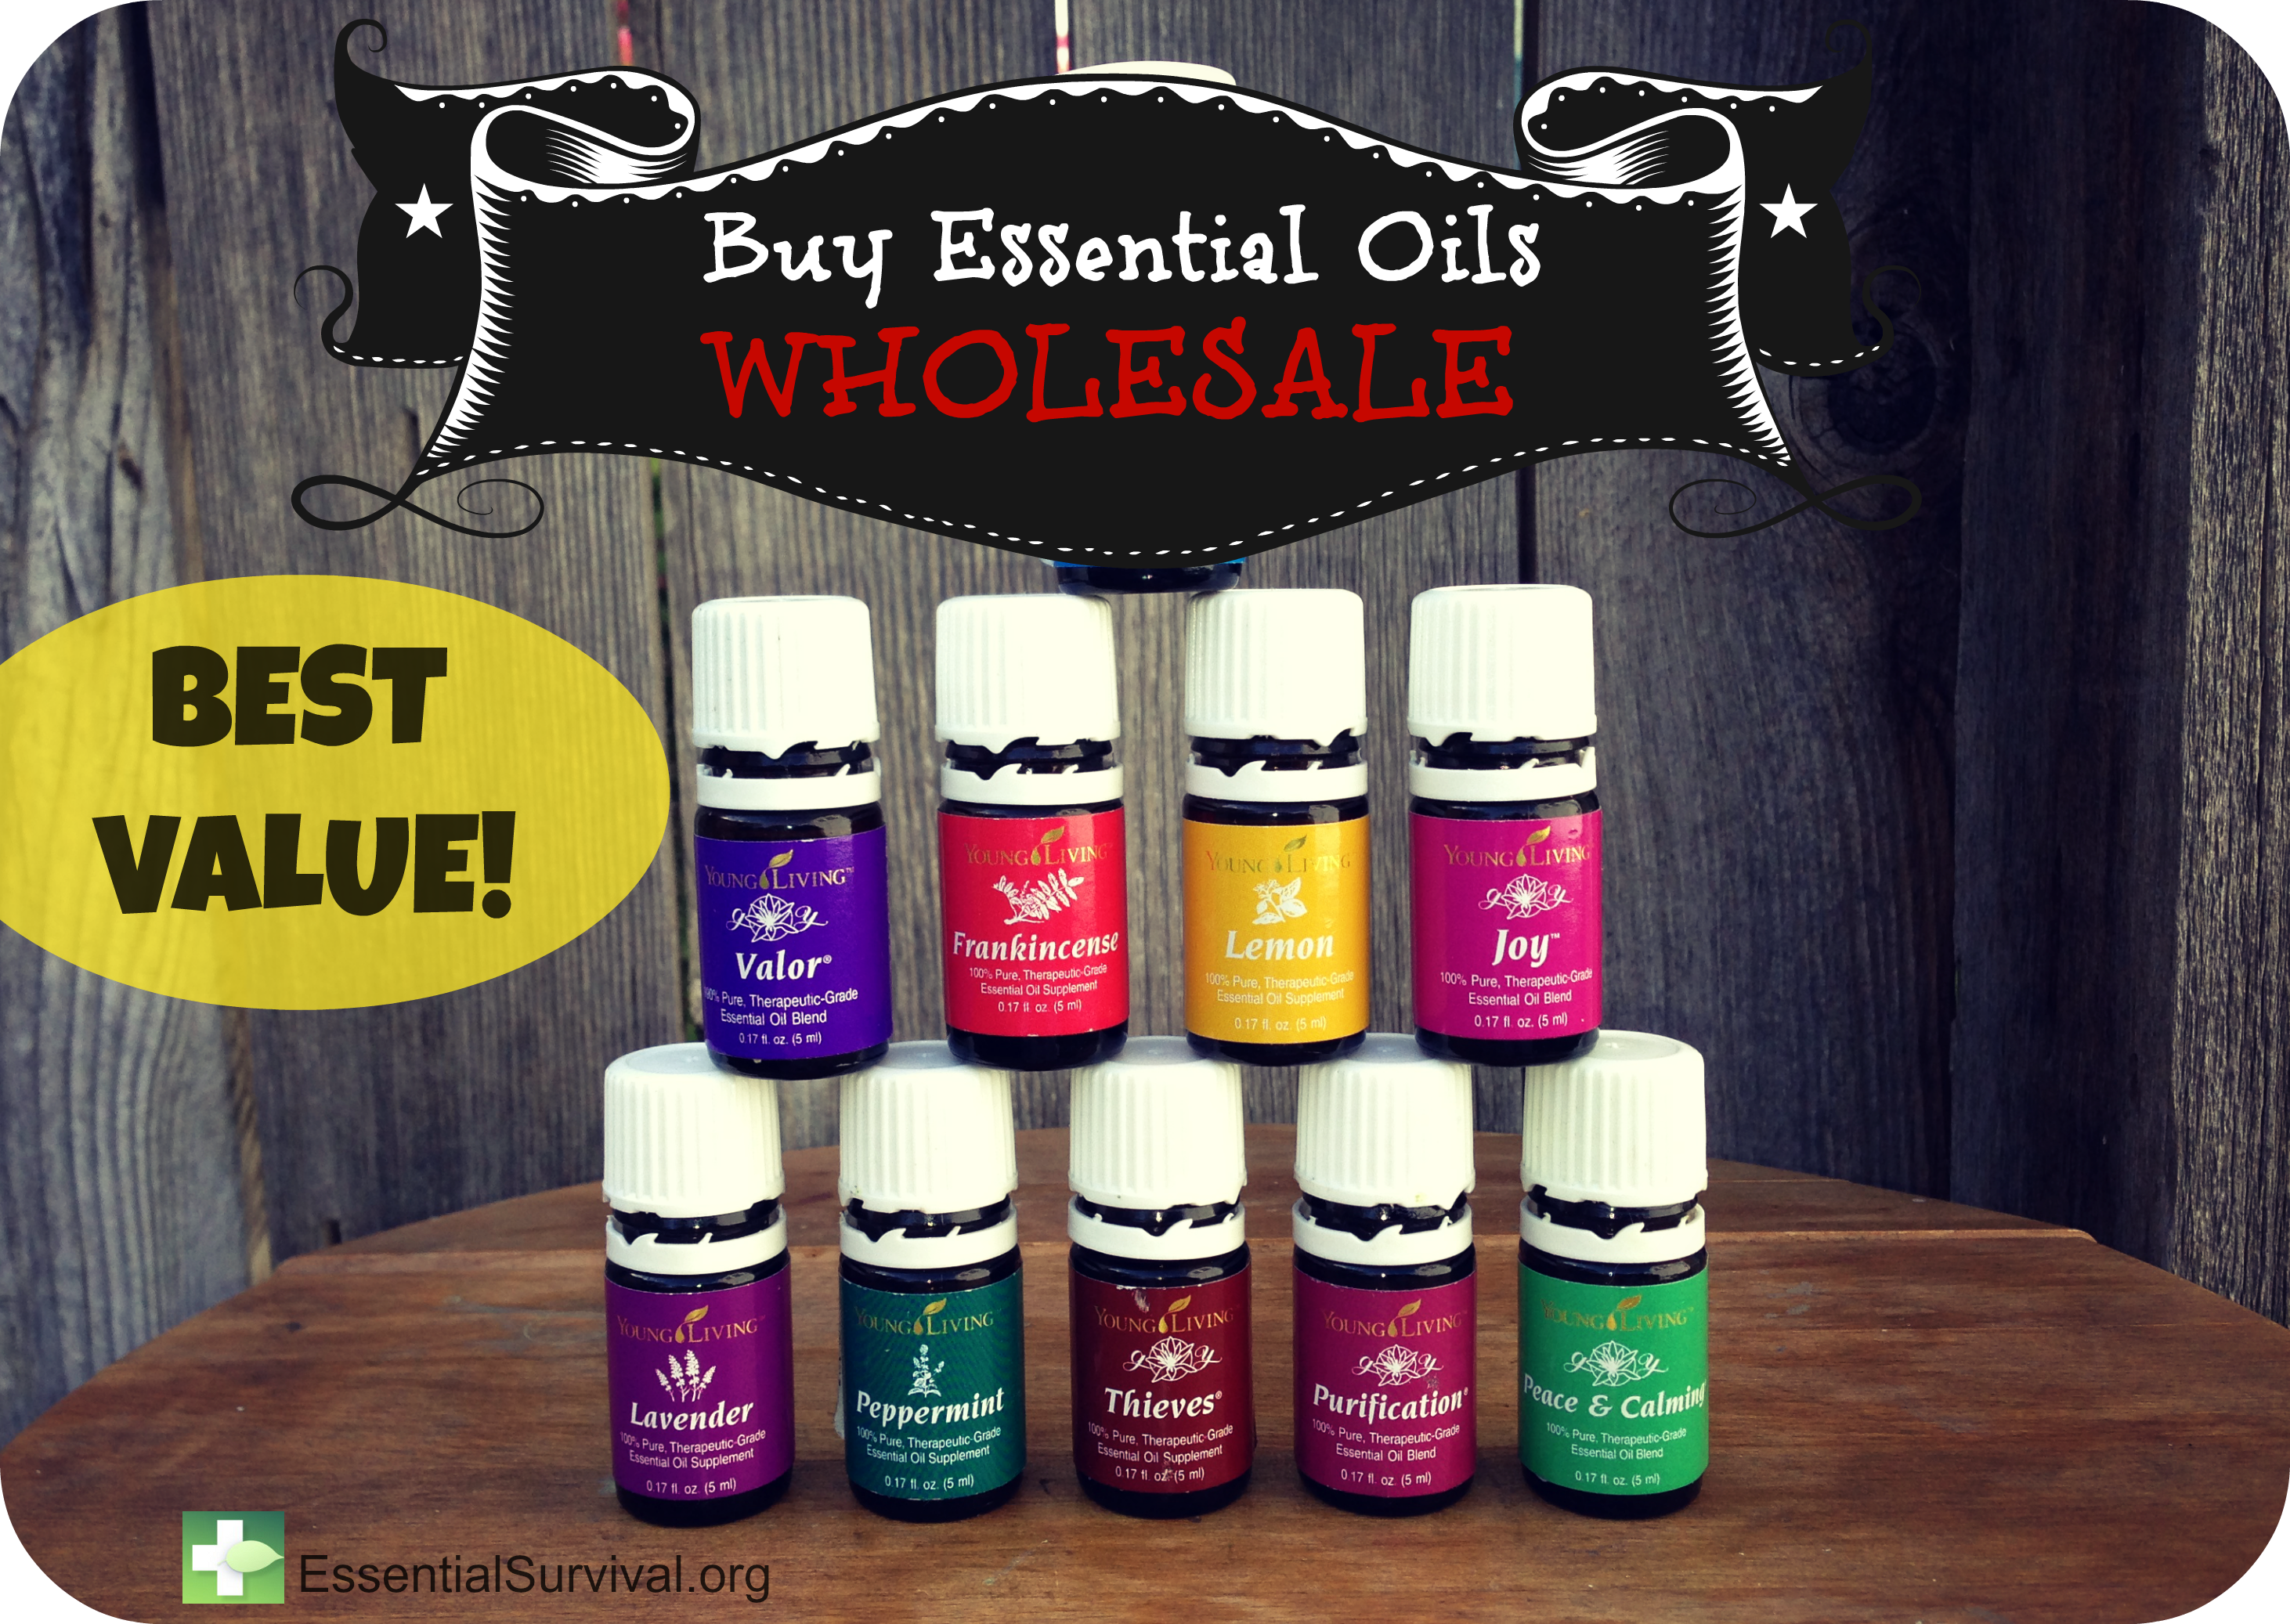 Buy Essential Oils Wholesale Buy essential oils